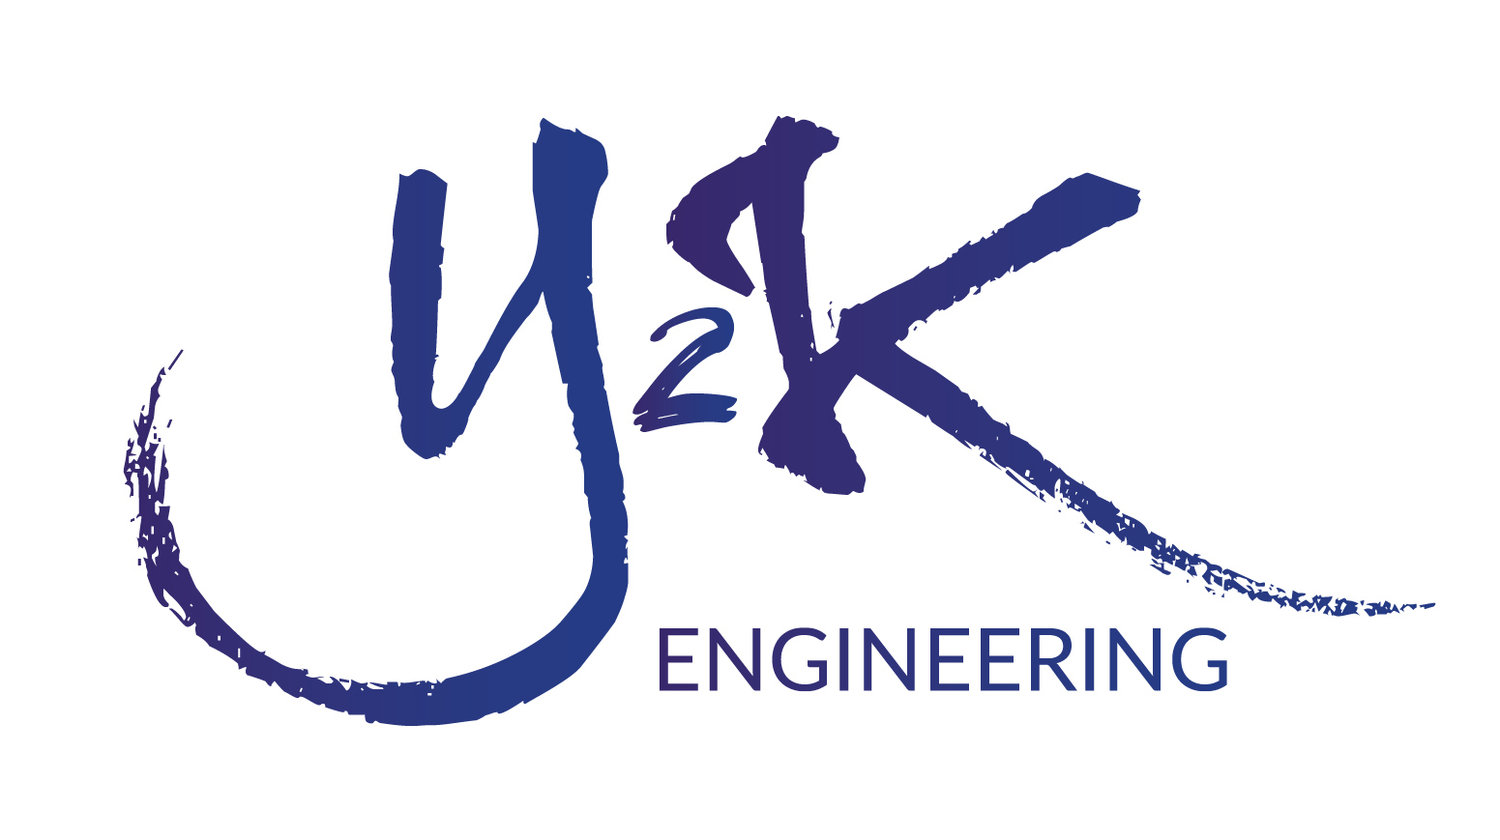 Y2K Engineering